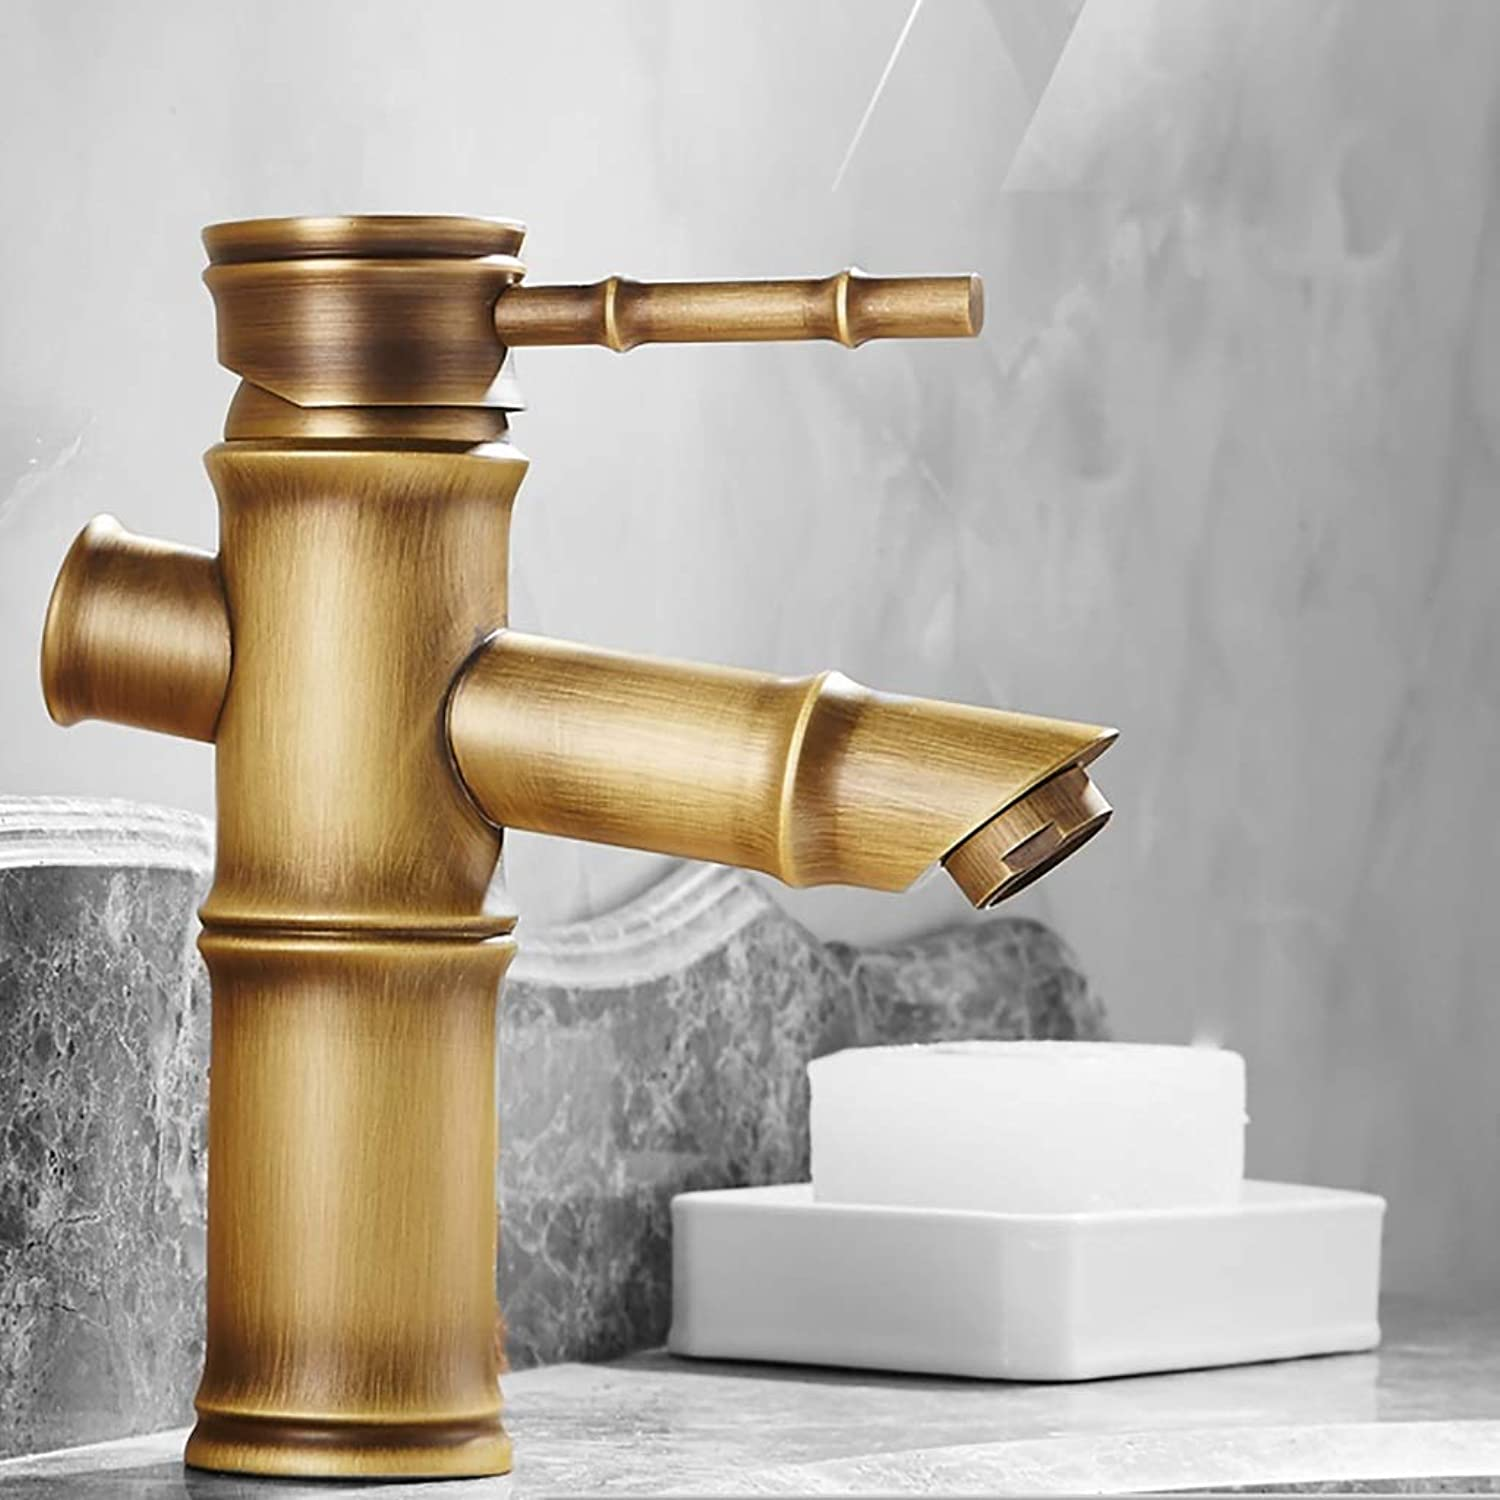 MWPO Vintage Retro Brass Antique Nostalgic Faucet Retro All Brass Faucet Hot and Cold Bamboo Faucet (color  A)